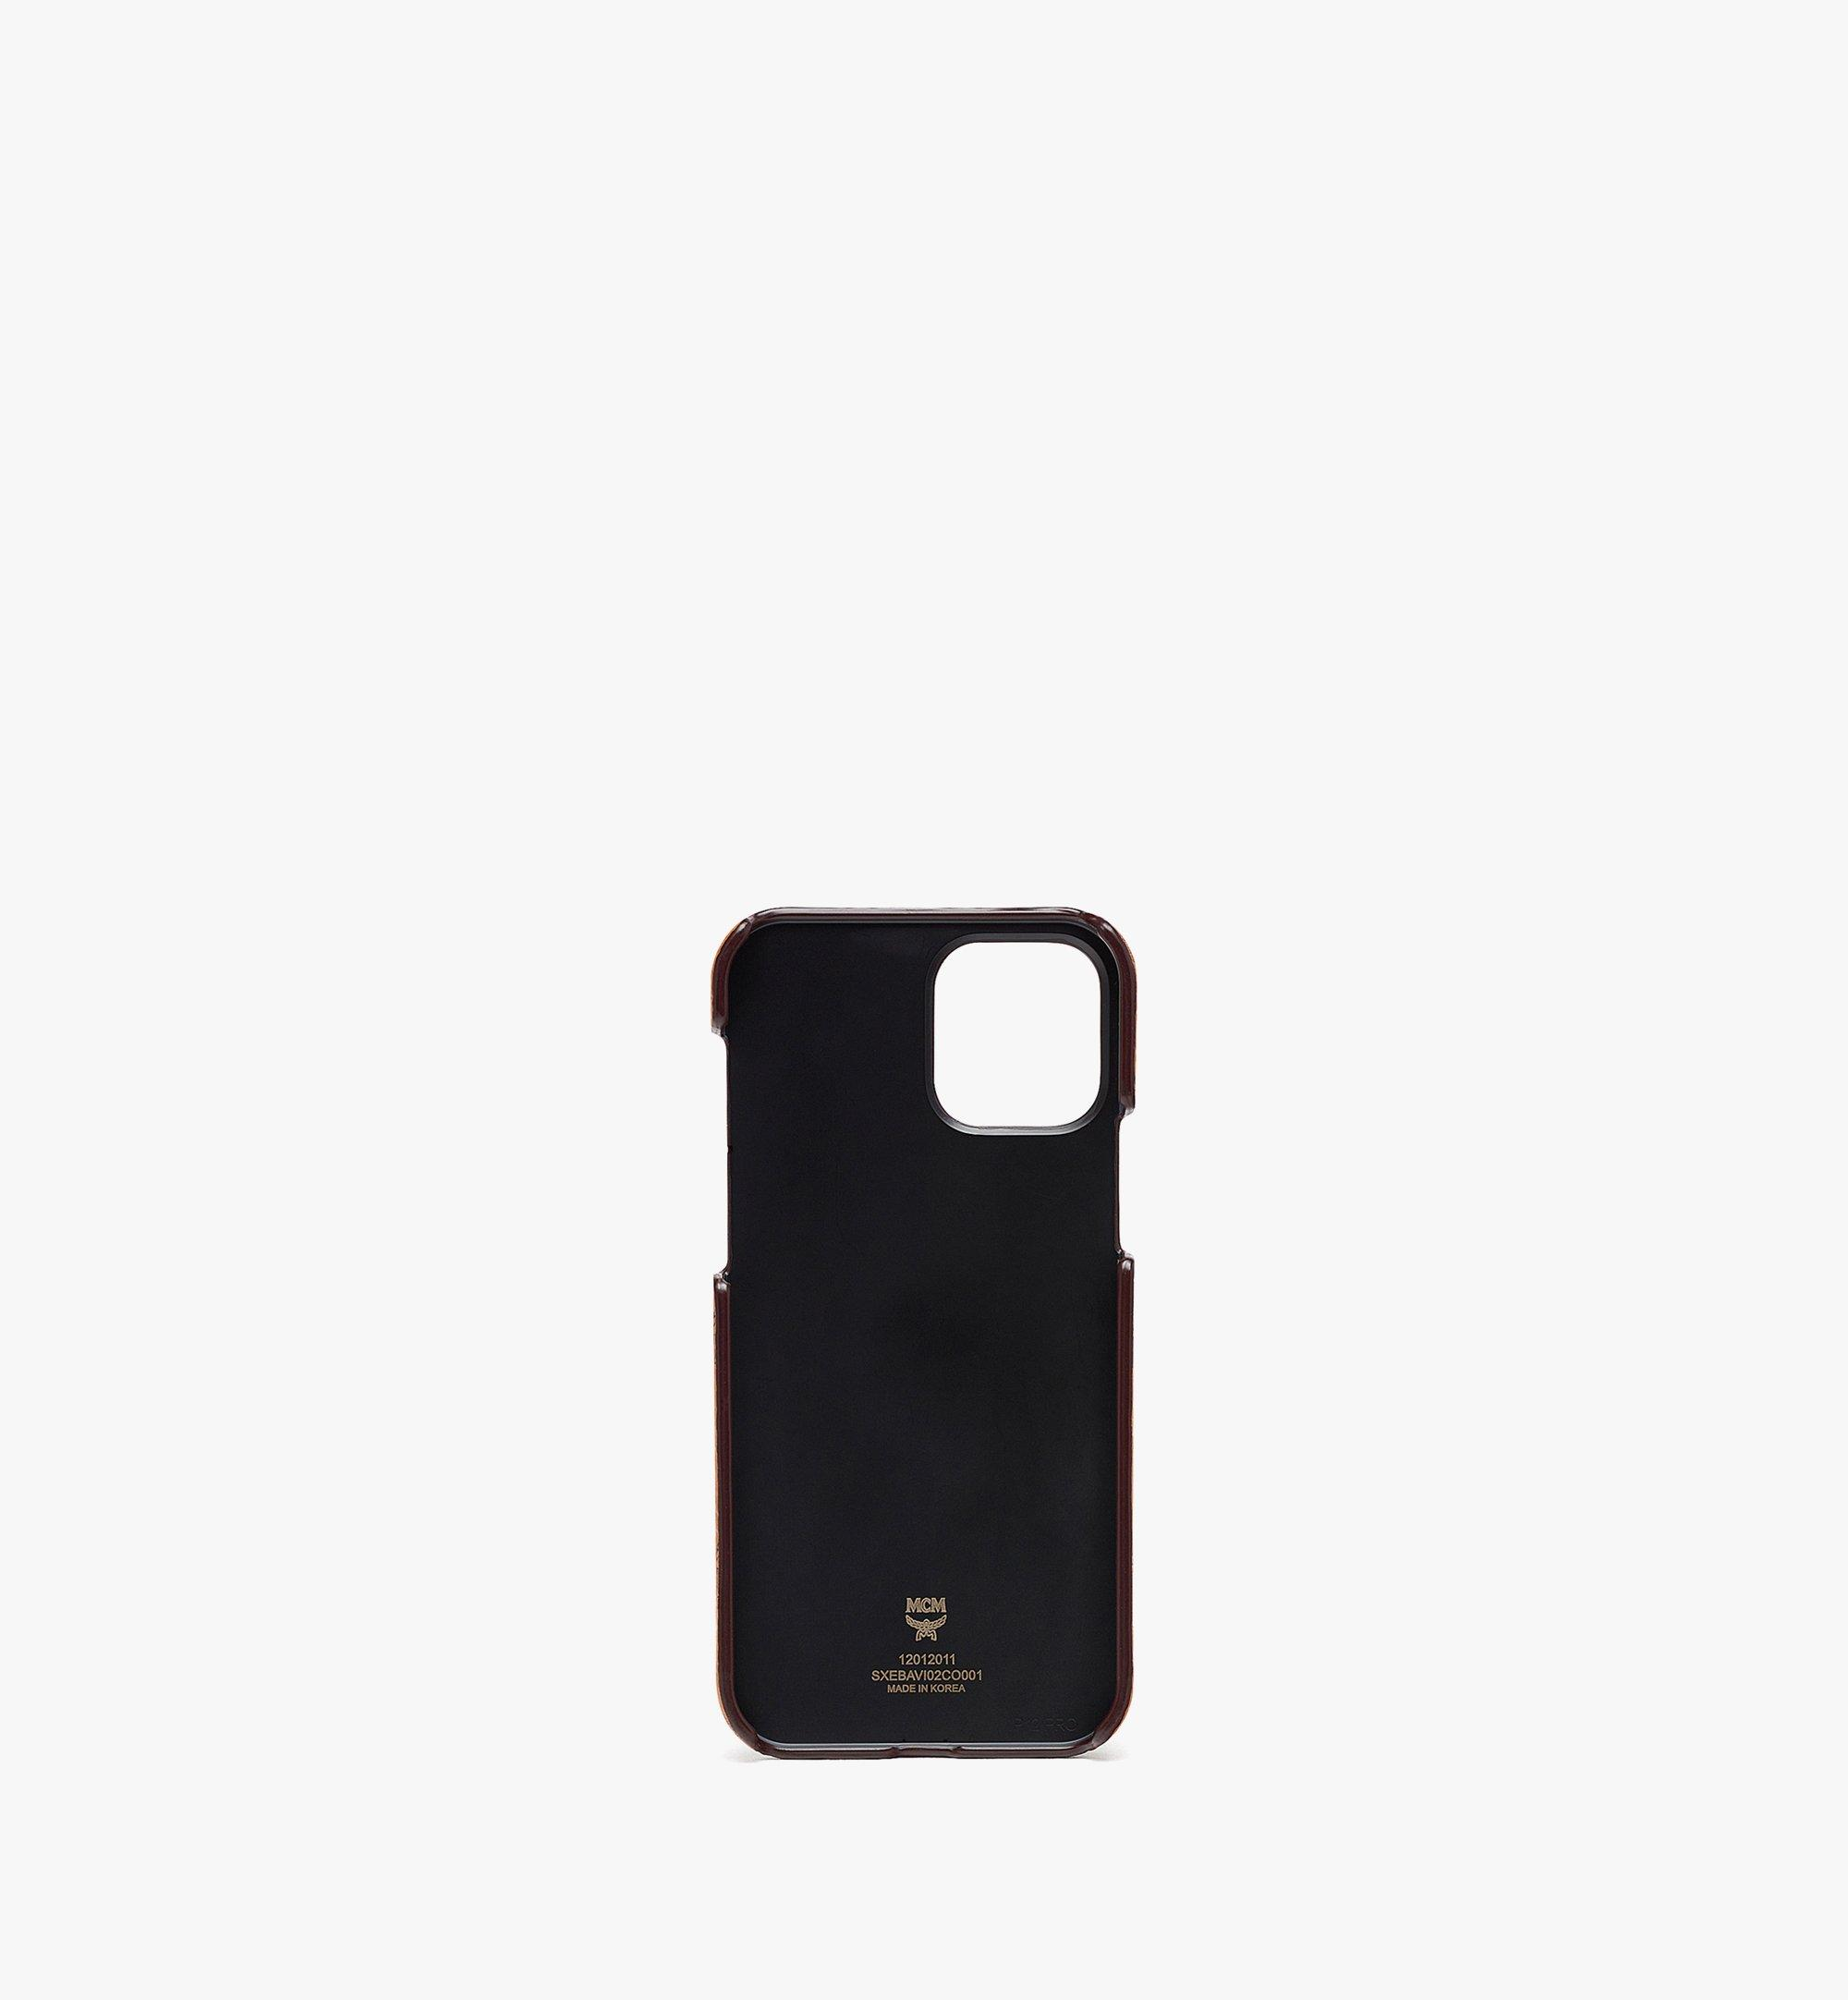 MCM iPhone 12/12 Pro Case with Chain handle and Card Slot Cognac MXEBAVI02CO001 Alternate View 1